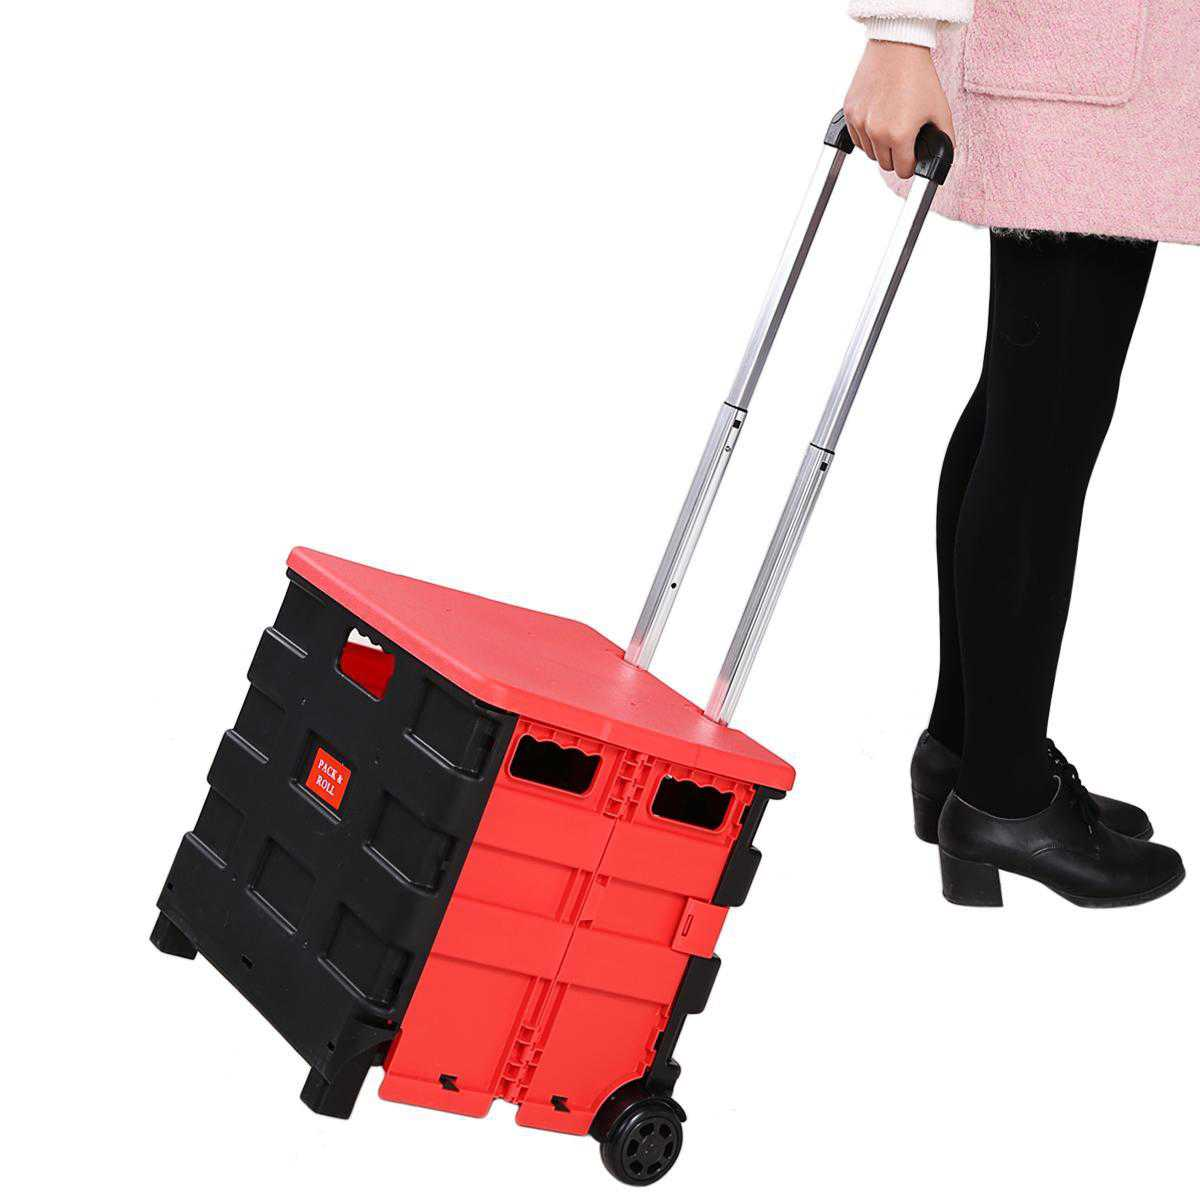 Folding Rolling Utility Cart, Hand Cart Truck Folded Collapsible Cart Shopping Crate on Wheel BETT